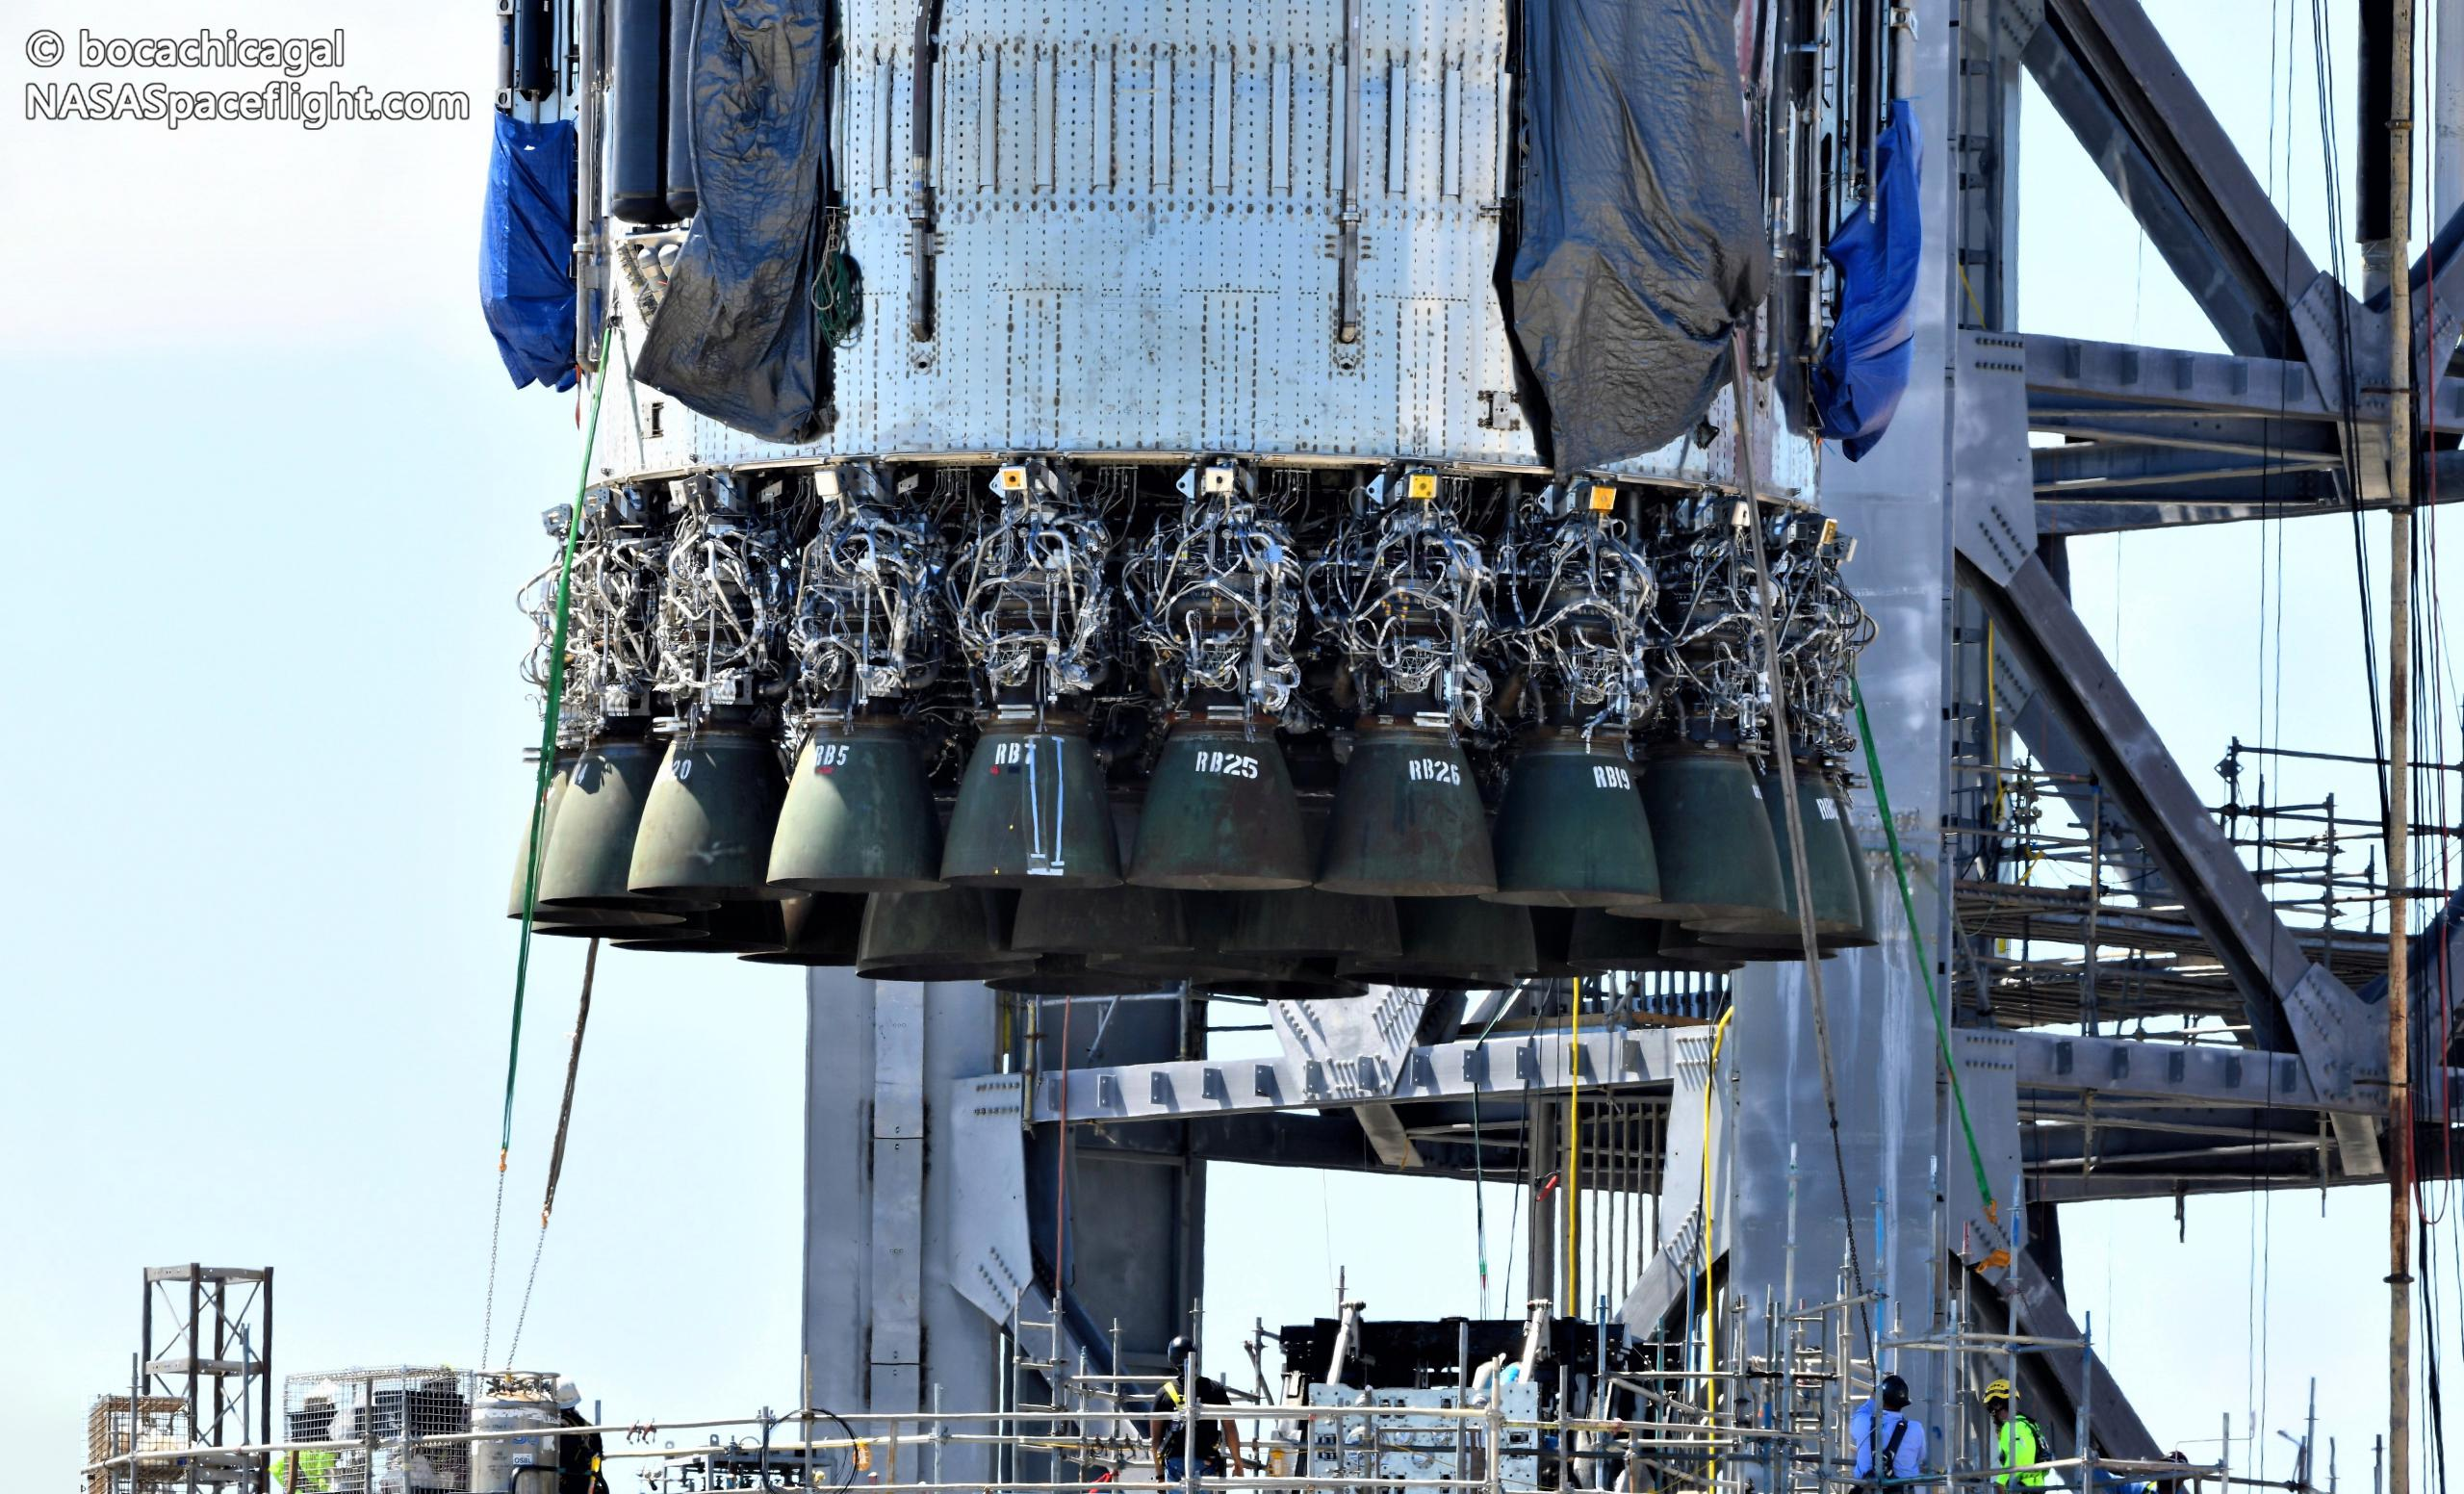 SpaceX moves Super Heavy booster to make room for Mechazilla arm installation